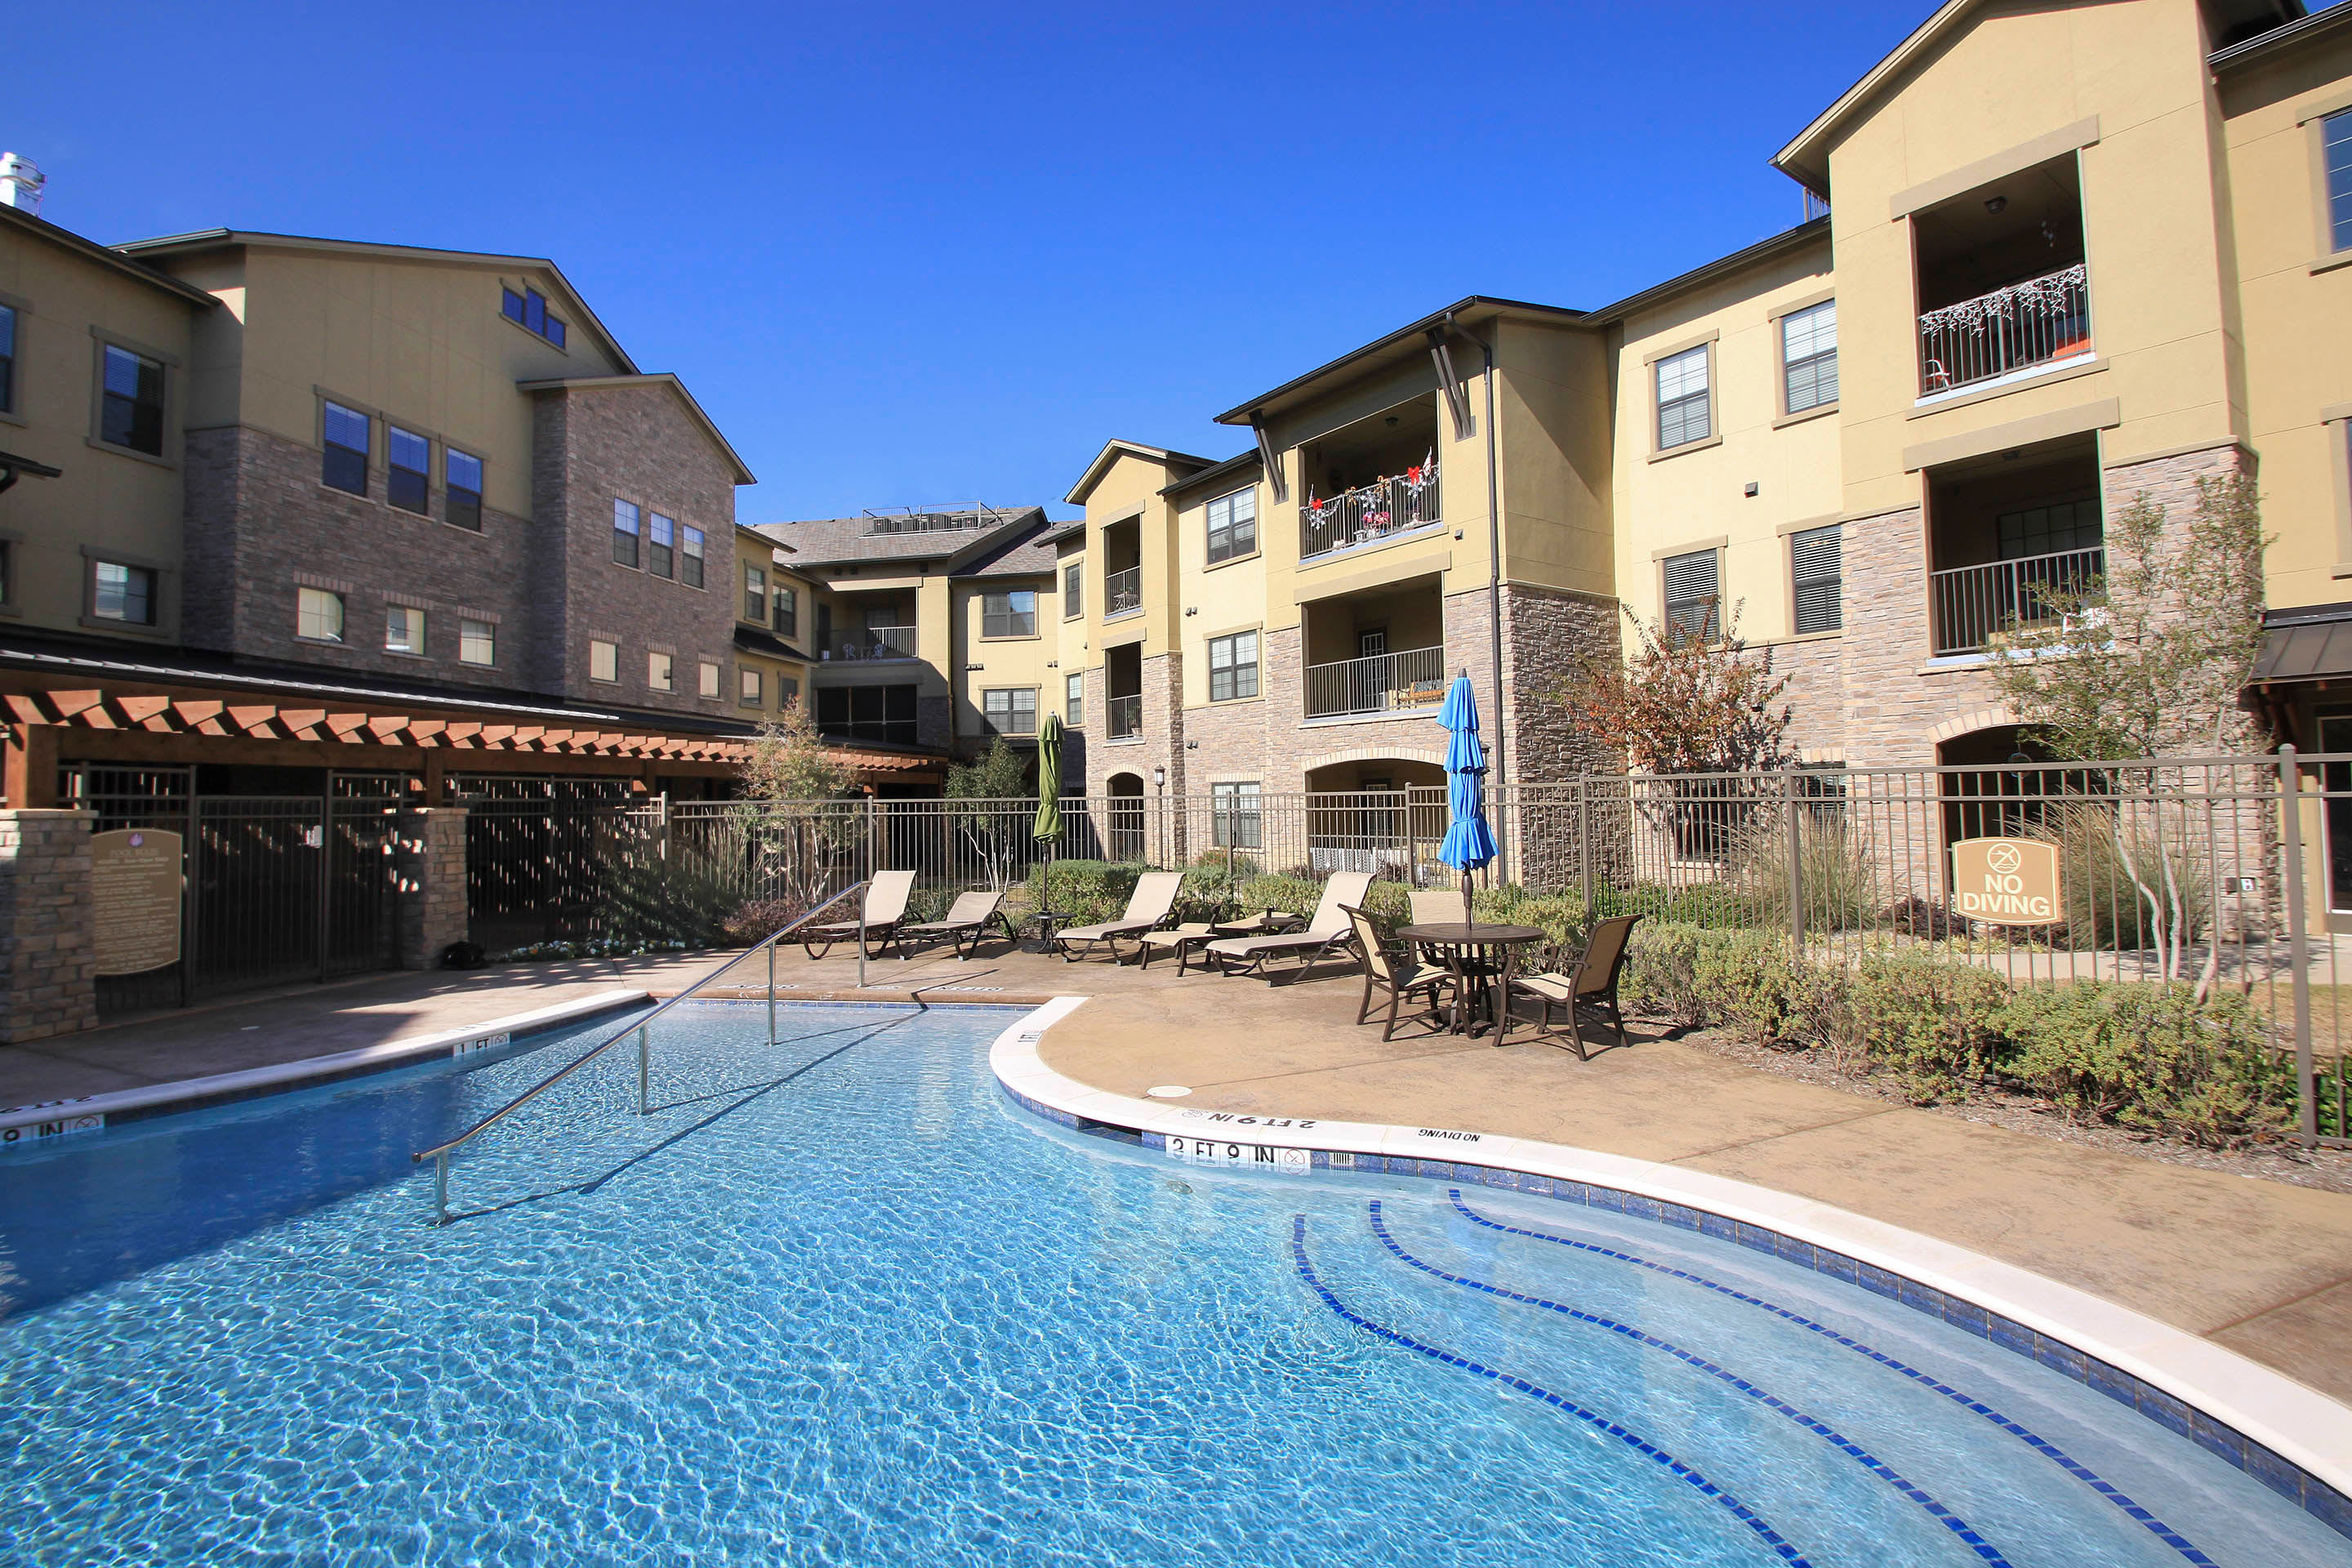 Allen senior living community with wonderful amenities